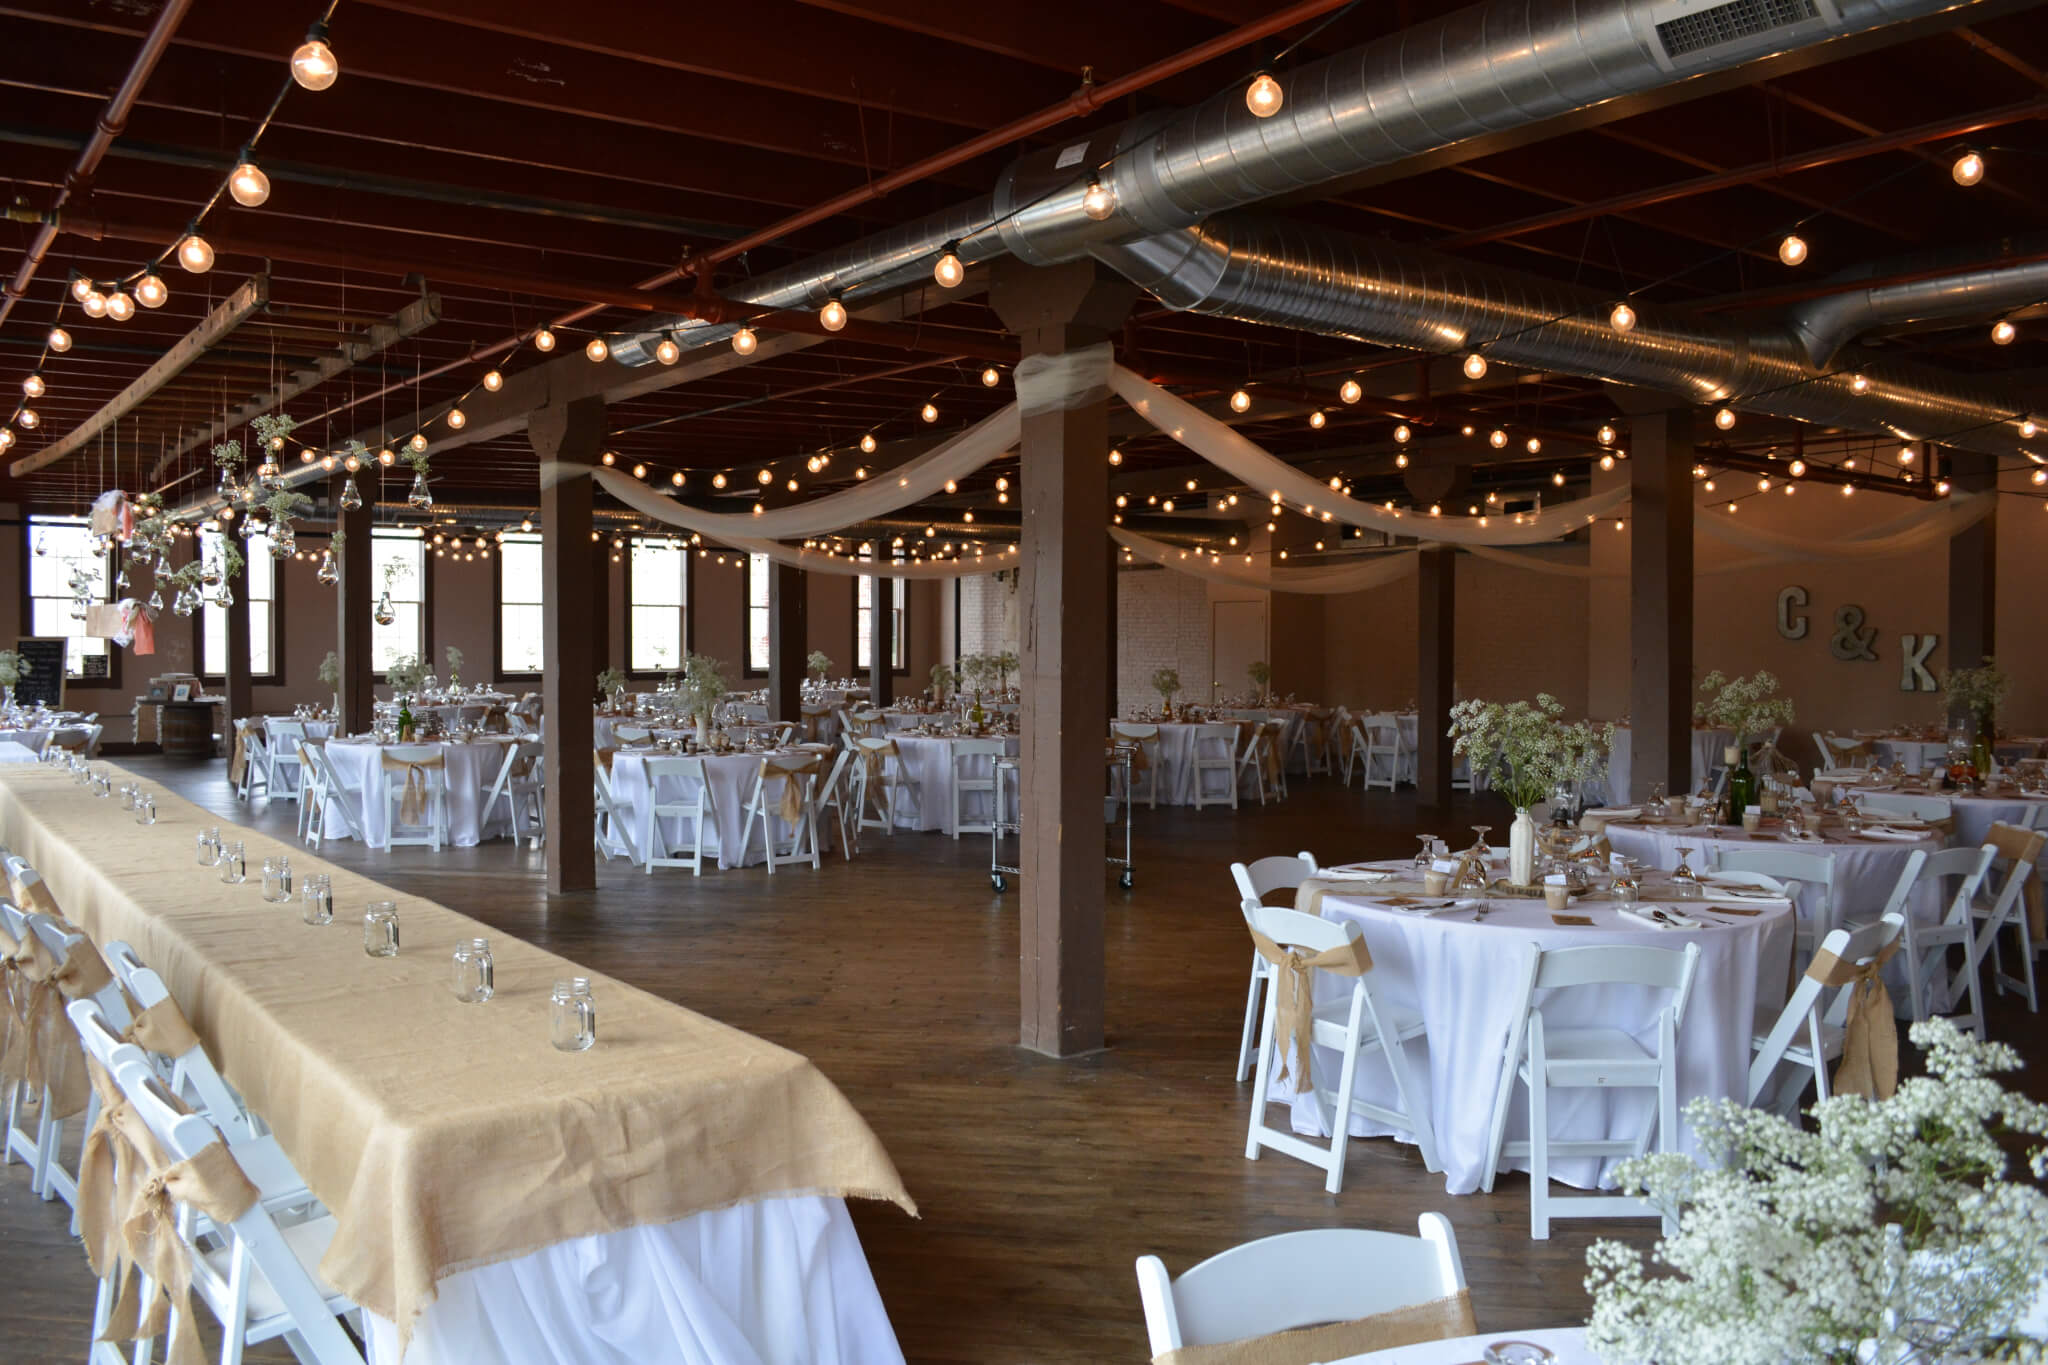 Michiana Event Venue with industrial charm, string lights, white chairs, round tables and historic ambiance